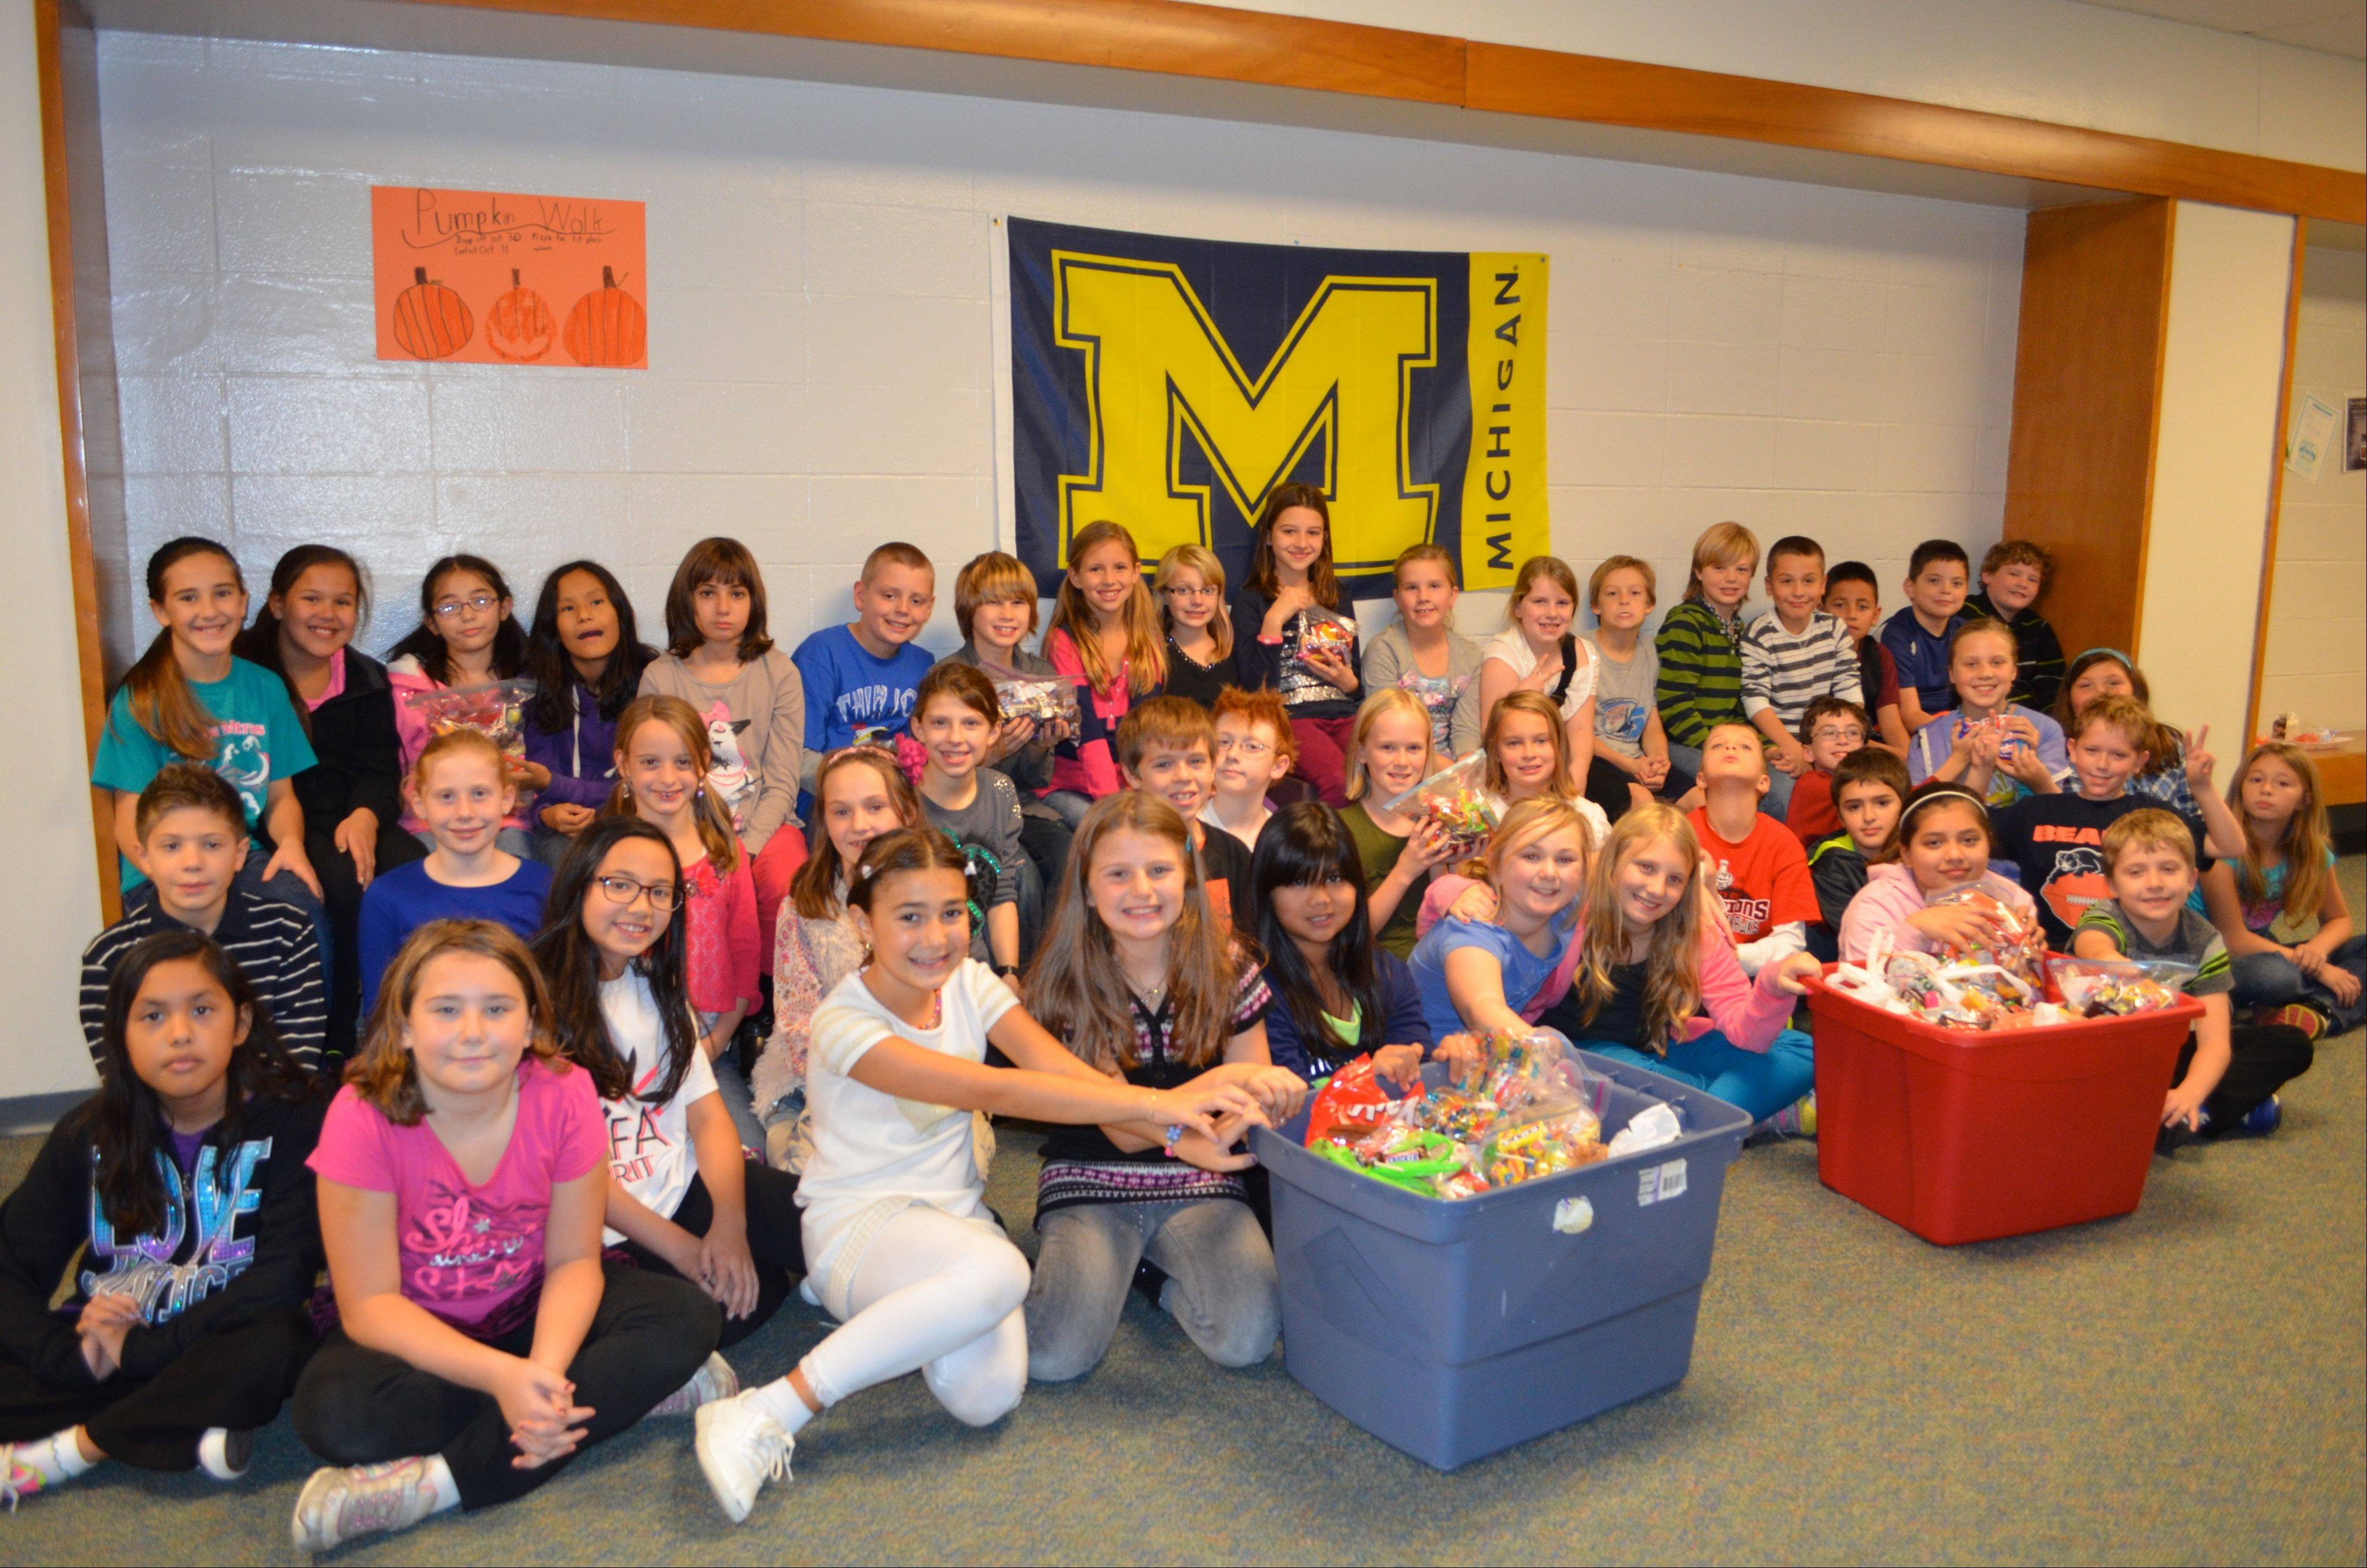 The most recent effort of the Winston Campus Elementary Make A Difference Club is to gather leftover Halloween candy and redirect it to those serving our country.